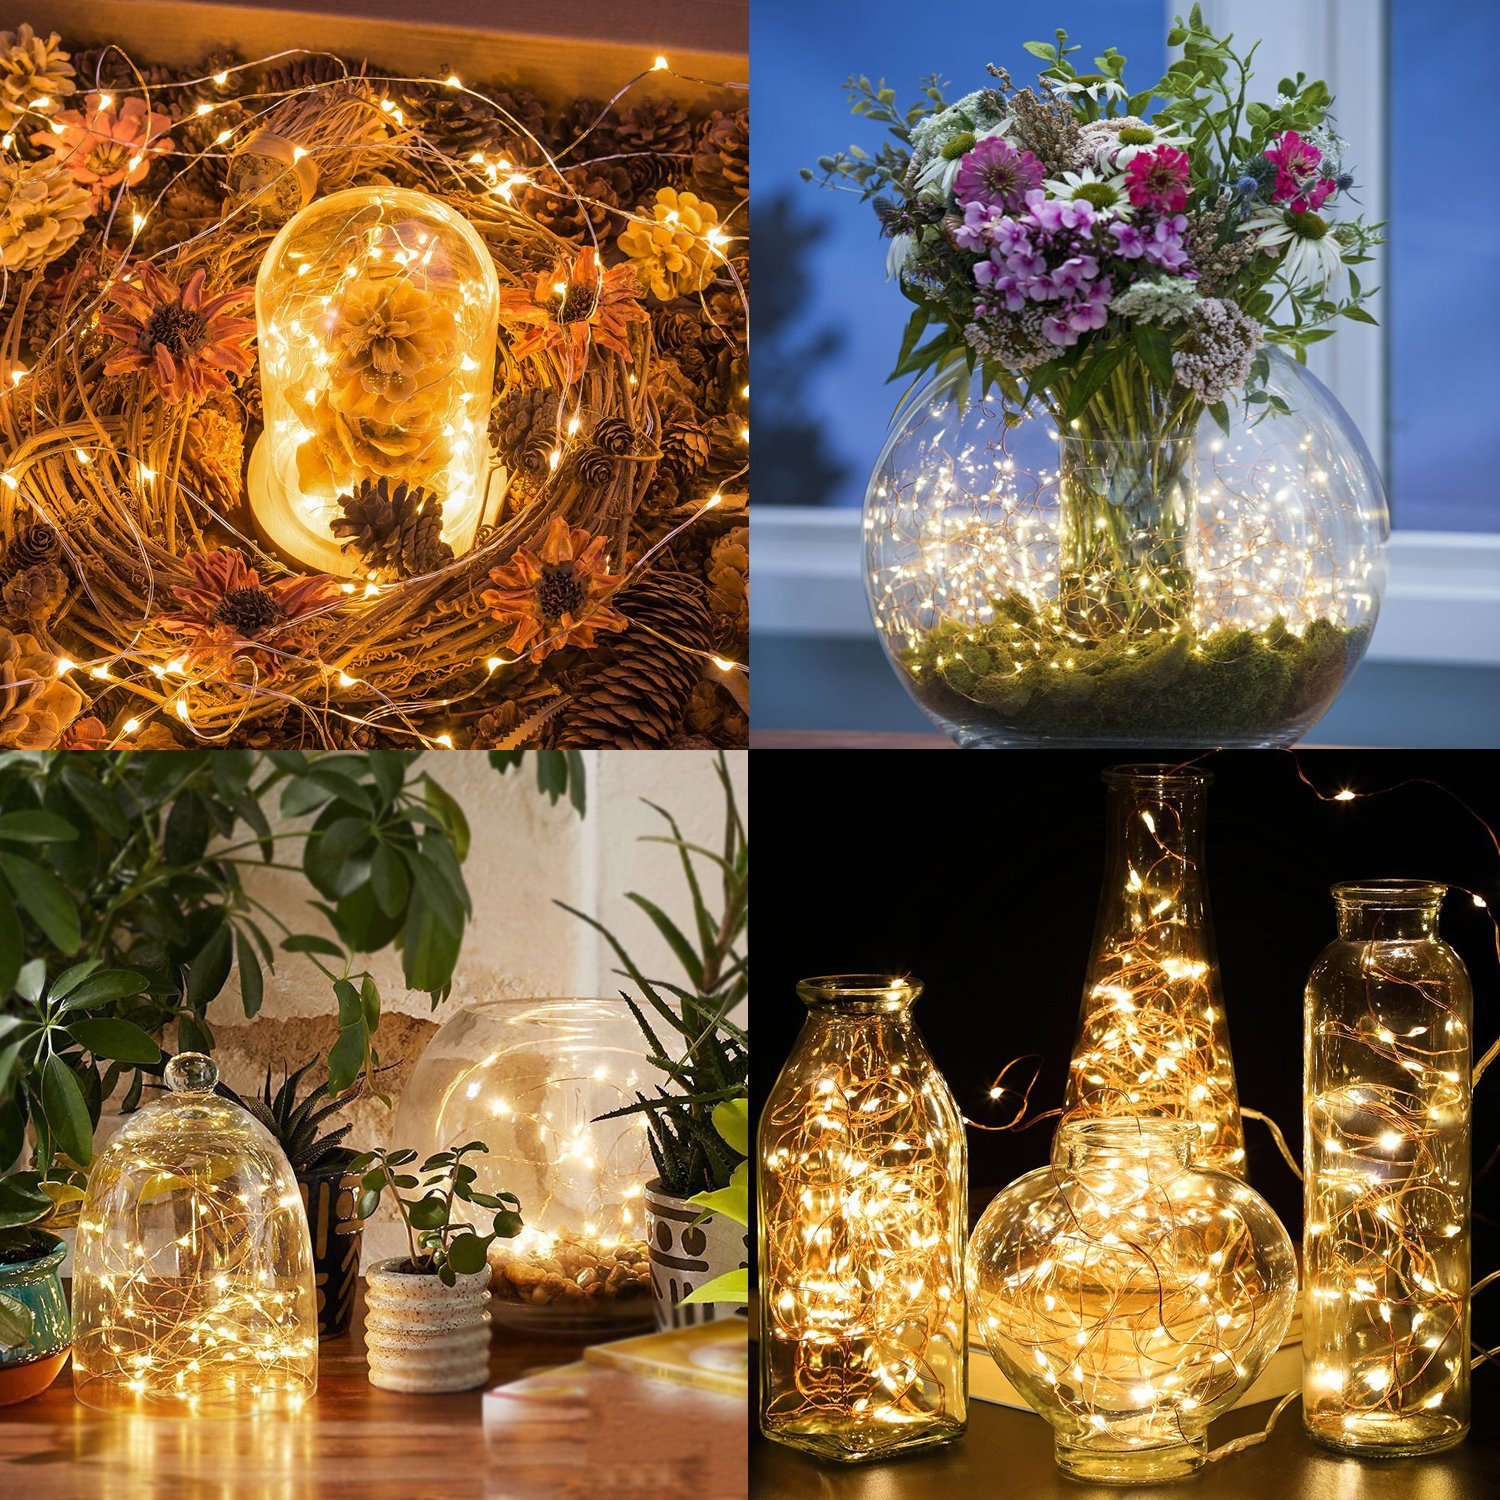 String Lights 2 Set 100 LED Christmas Fairy Lights with Remote Control(Timer),Warmtaste 33ft String Waterproof Copper Wire, Decor Rope Lights for Bedroom,Patio,Garden,Parties,Wedding(Warm White ) by Warmtaste (Image #5)